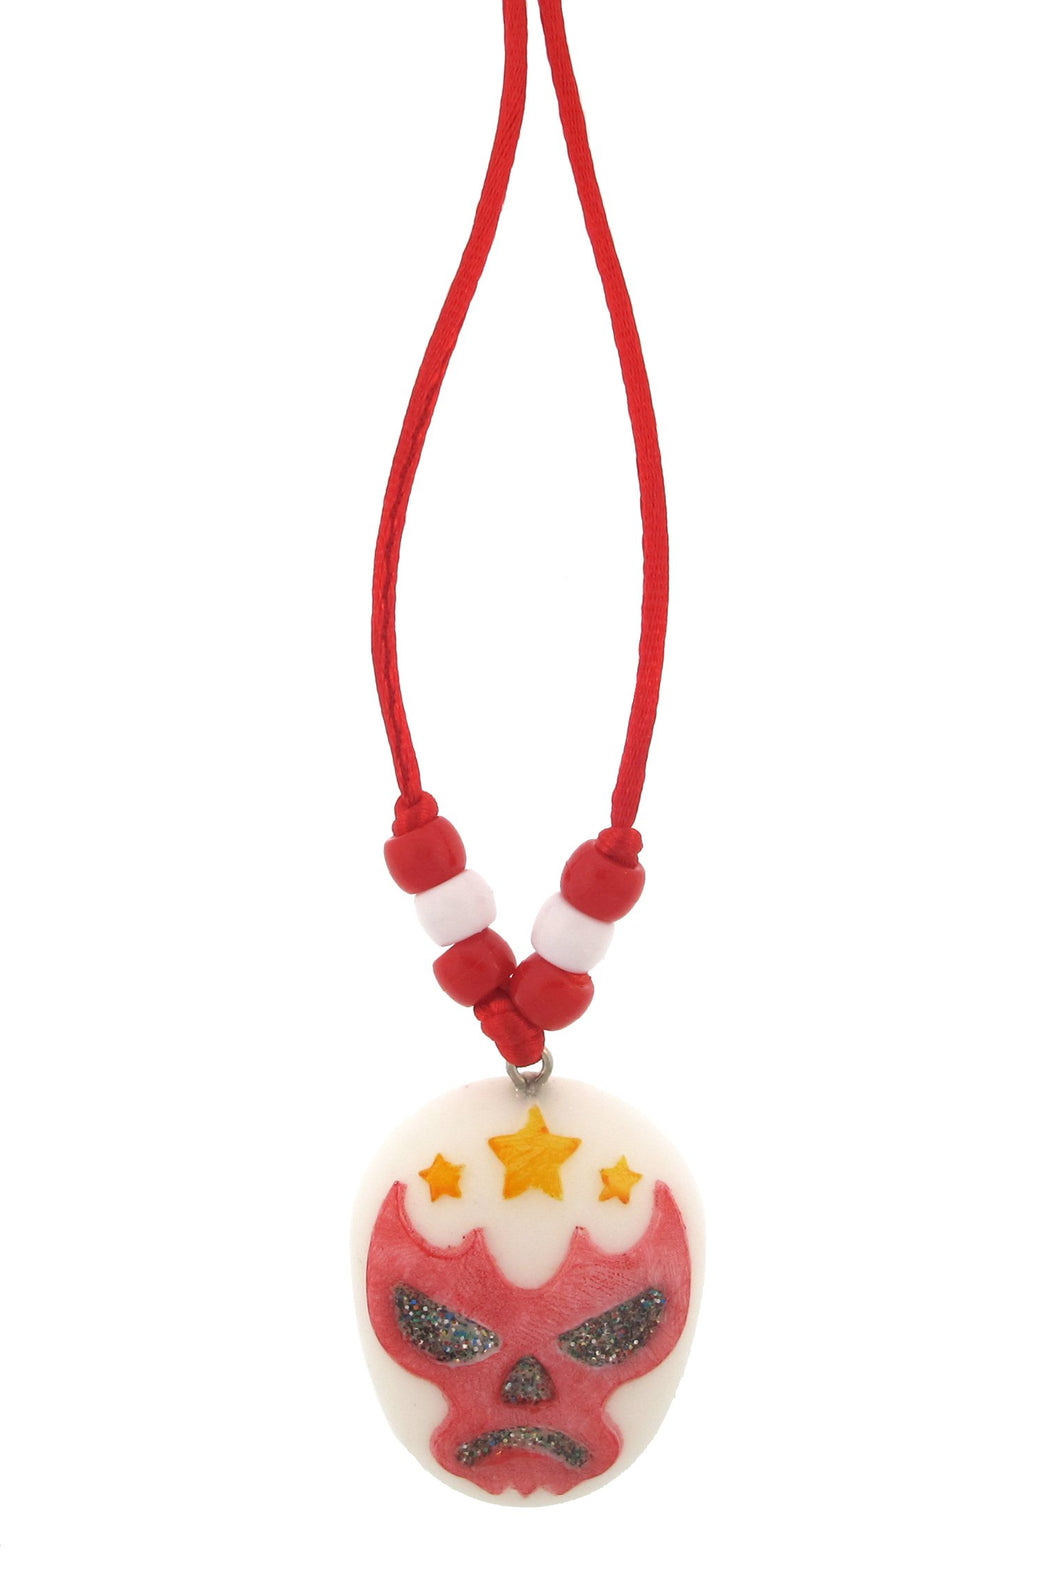 'La Estrella Fugaz' The Shooting Star Luchador Resin Necklace